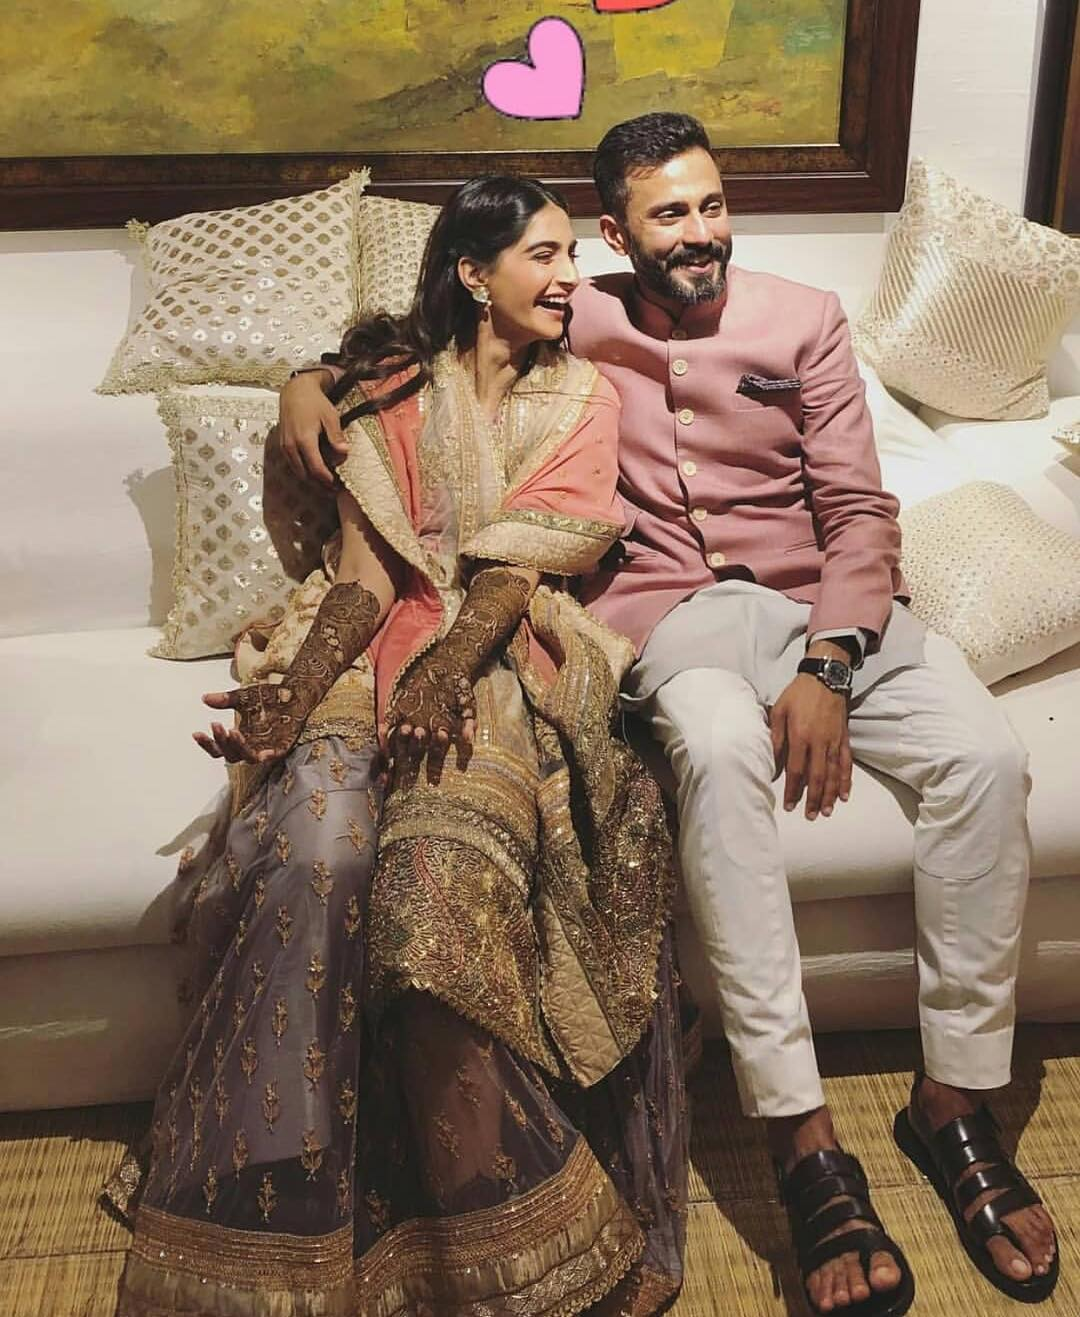 Sonam Kapoor on her Mehendi Function with the Groom - Anand Ahuja wearing a Rose Pink Sherwani by Raghavendra Rathore